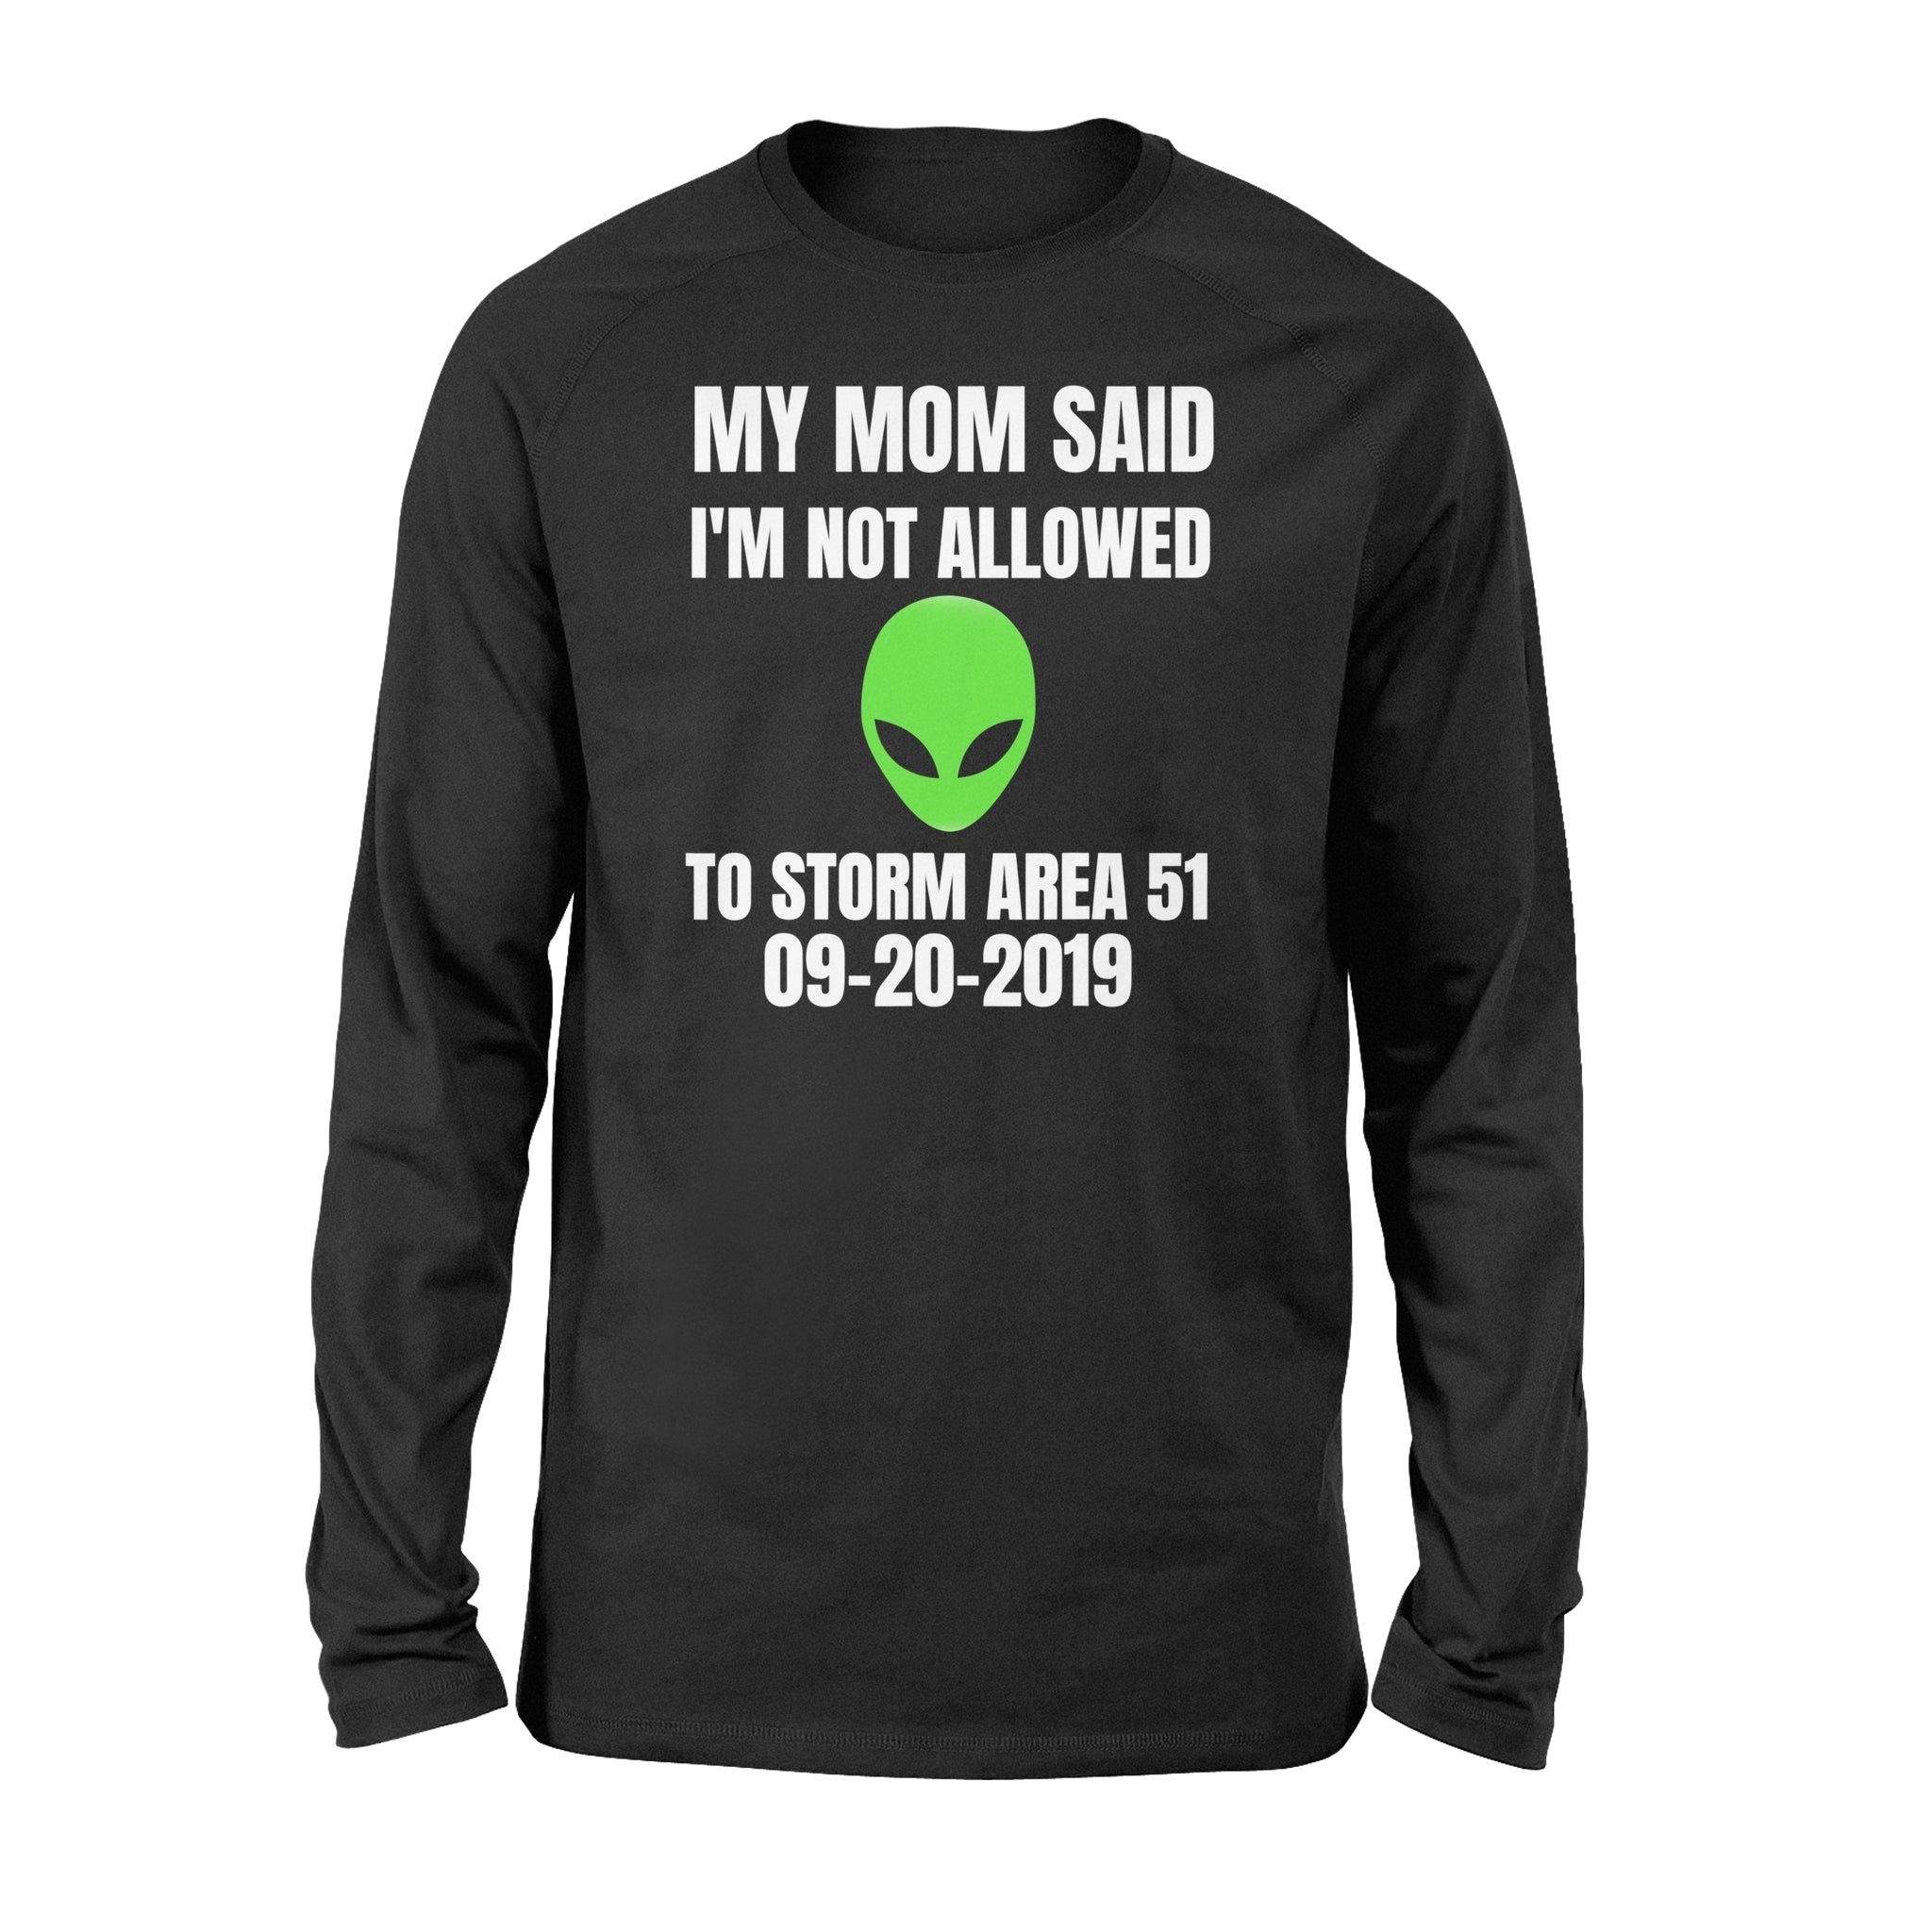 My Mom Said I'm not allowed to storm area 51 kids funny T-Shirt – Standard Long Sleeve